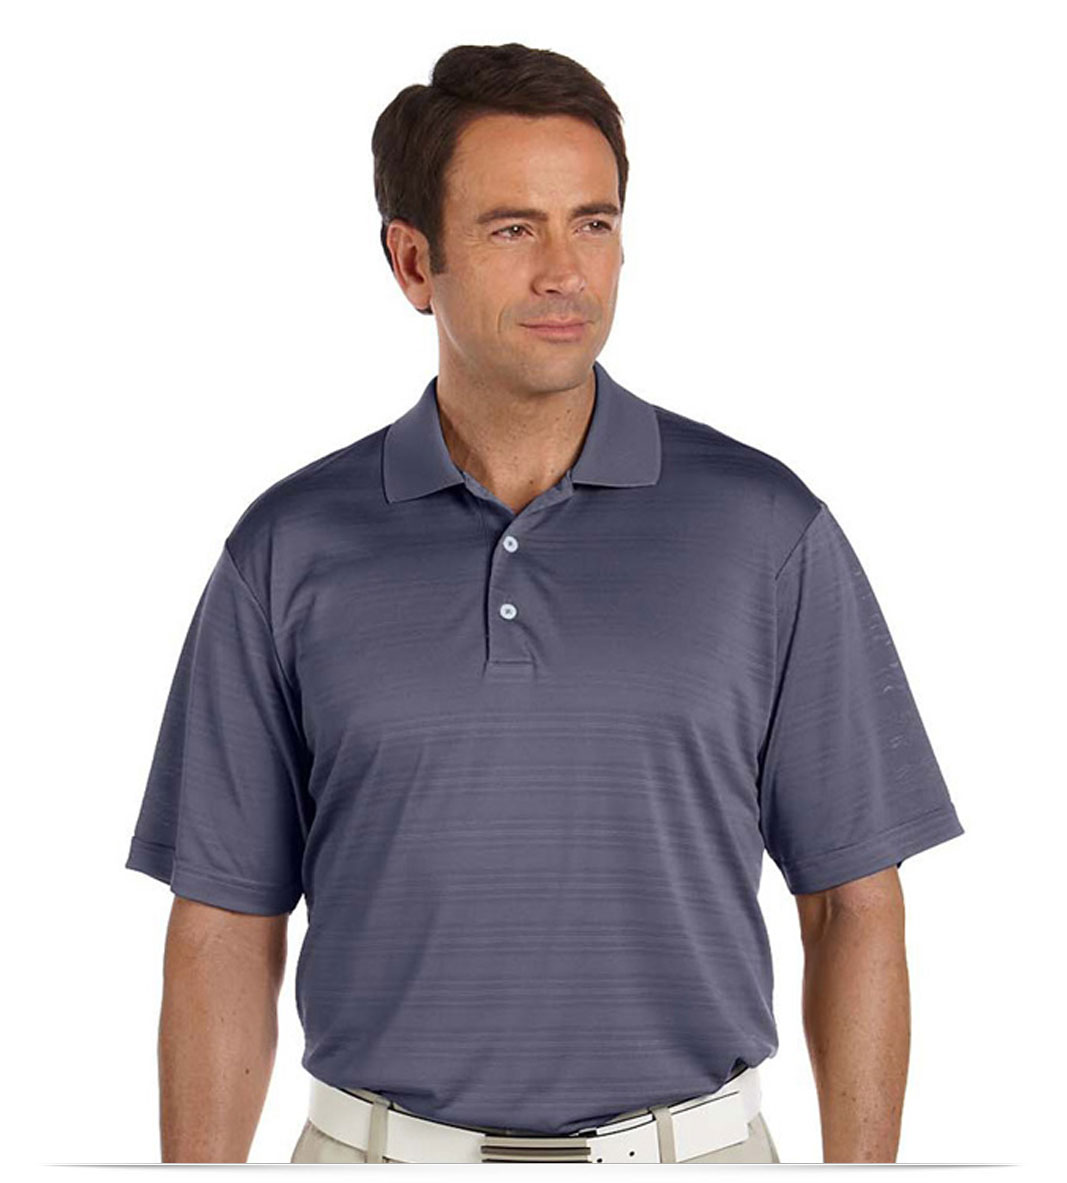 Design embroidered adidas embroidered polo shirt online at for Embroidered work shirts no minimum order